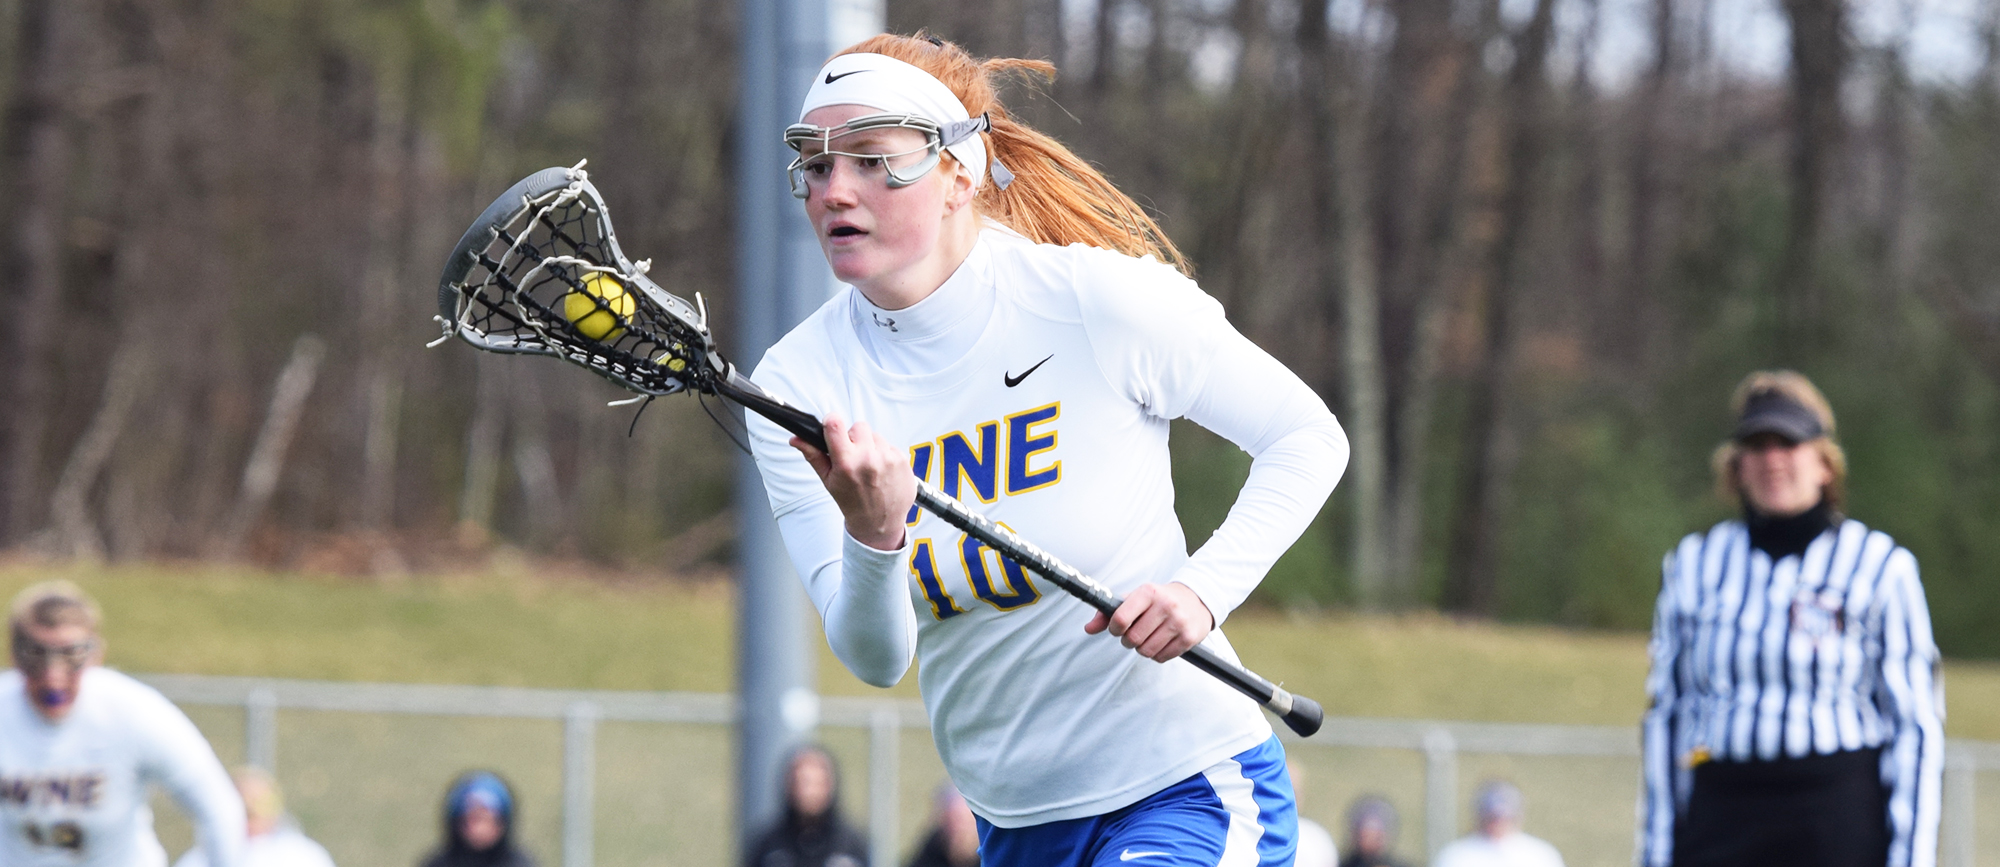 Sophomore Lindsey Phillips scored three goals and secured five draws in Western New England's 17-8 loss to UNE in the first round of the CCC Tournament on Saturday. (Photo by Rachael Margossian)